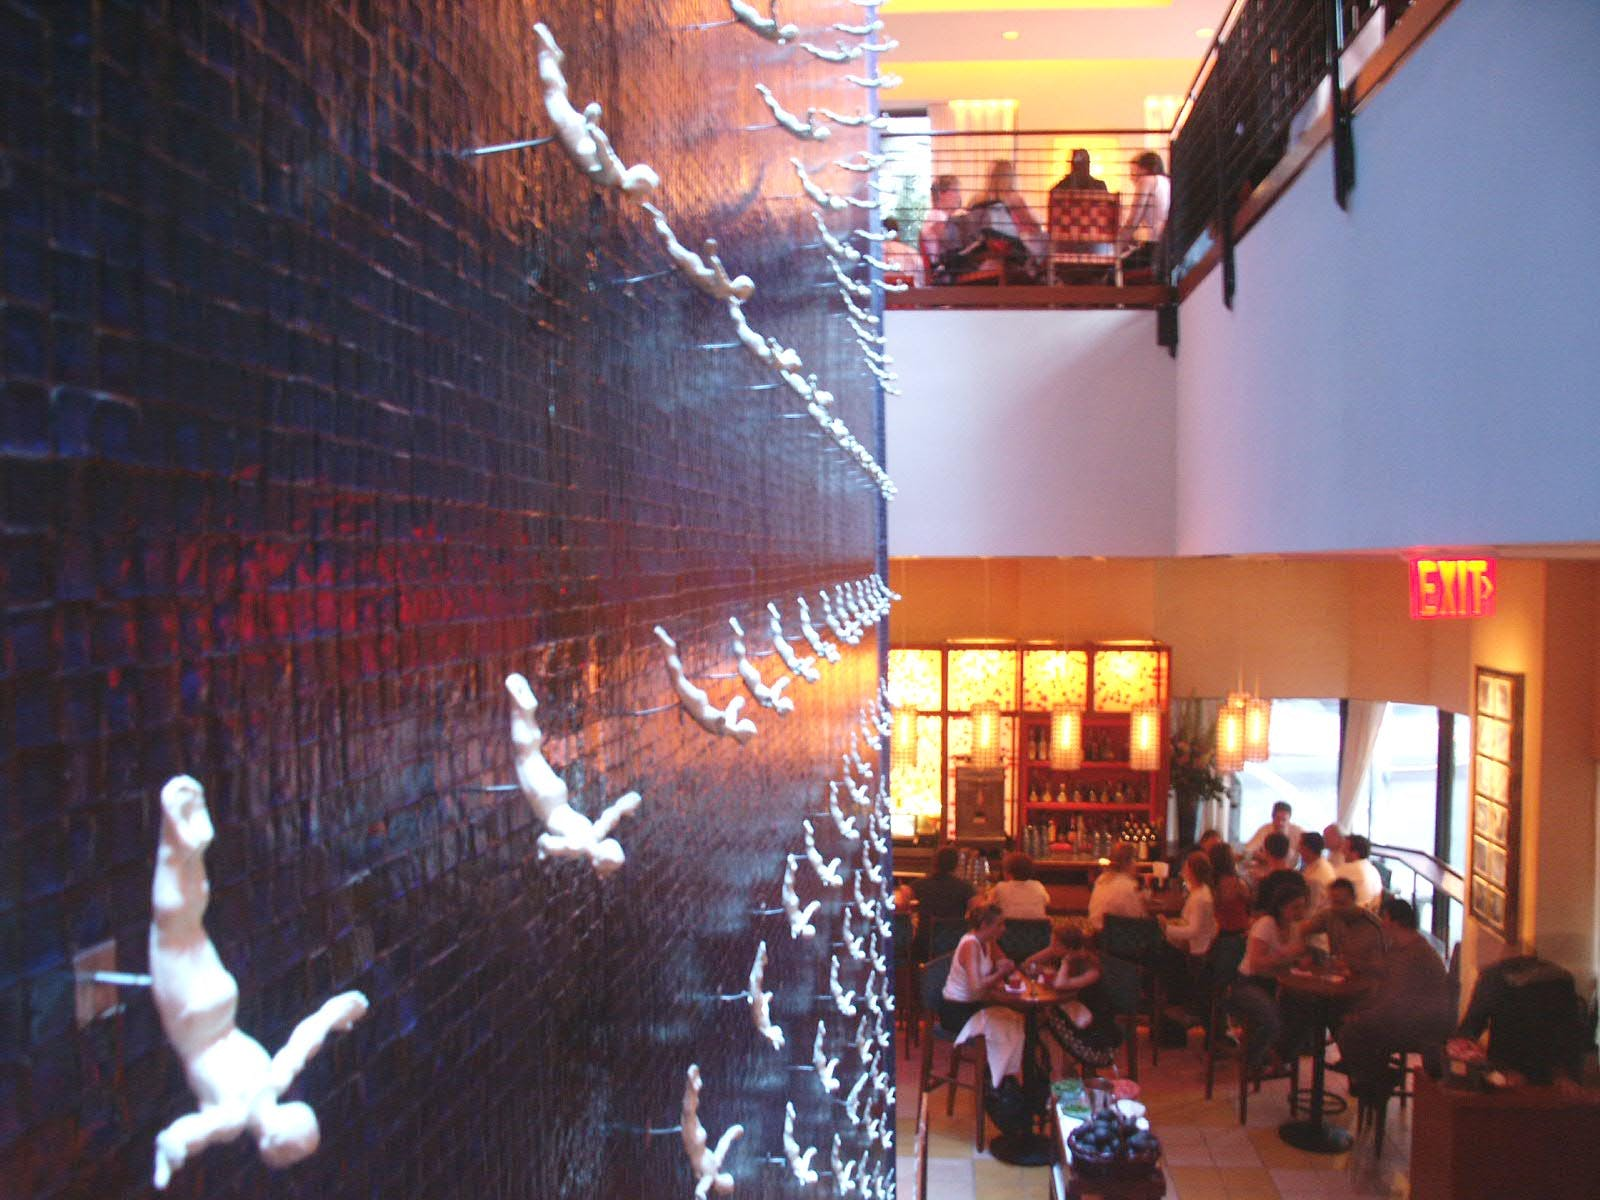 a wall installation at Rosa Mexicano in Lincoln Center, NY